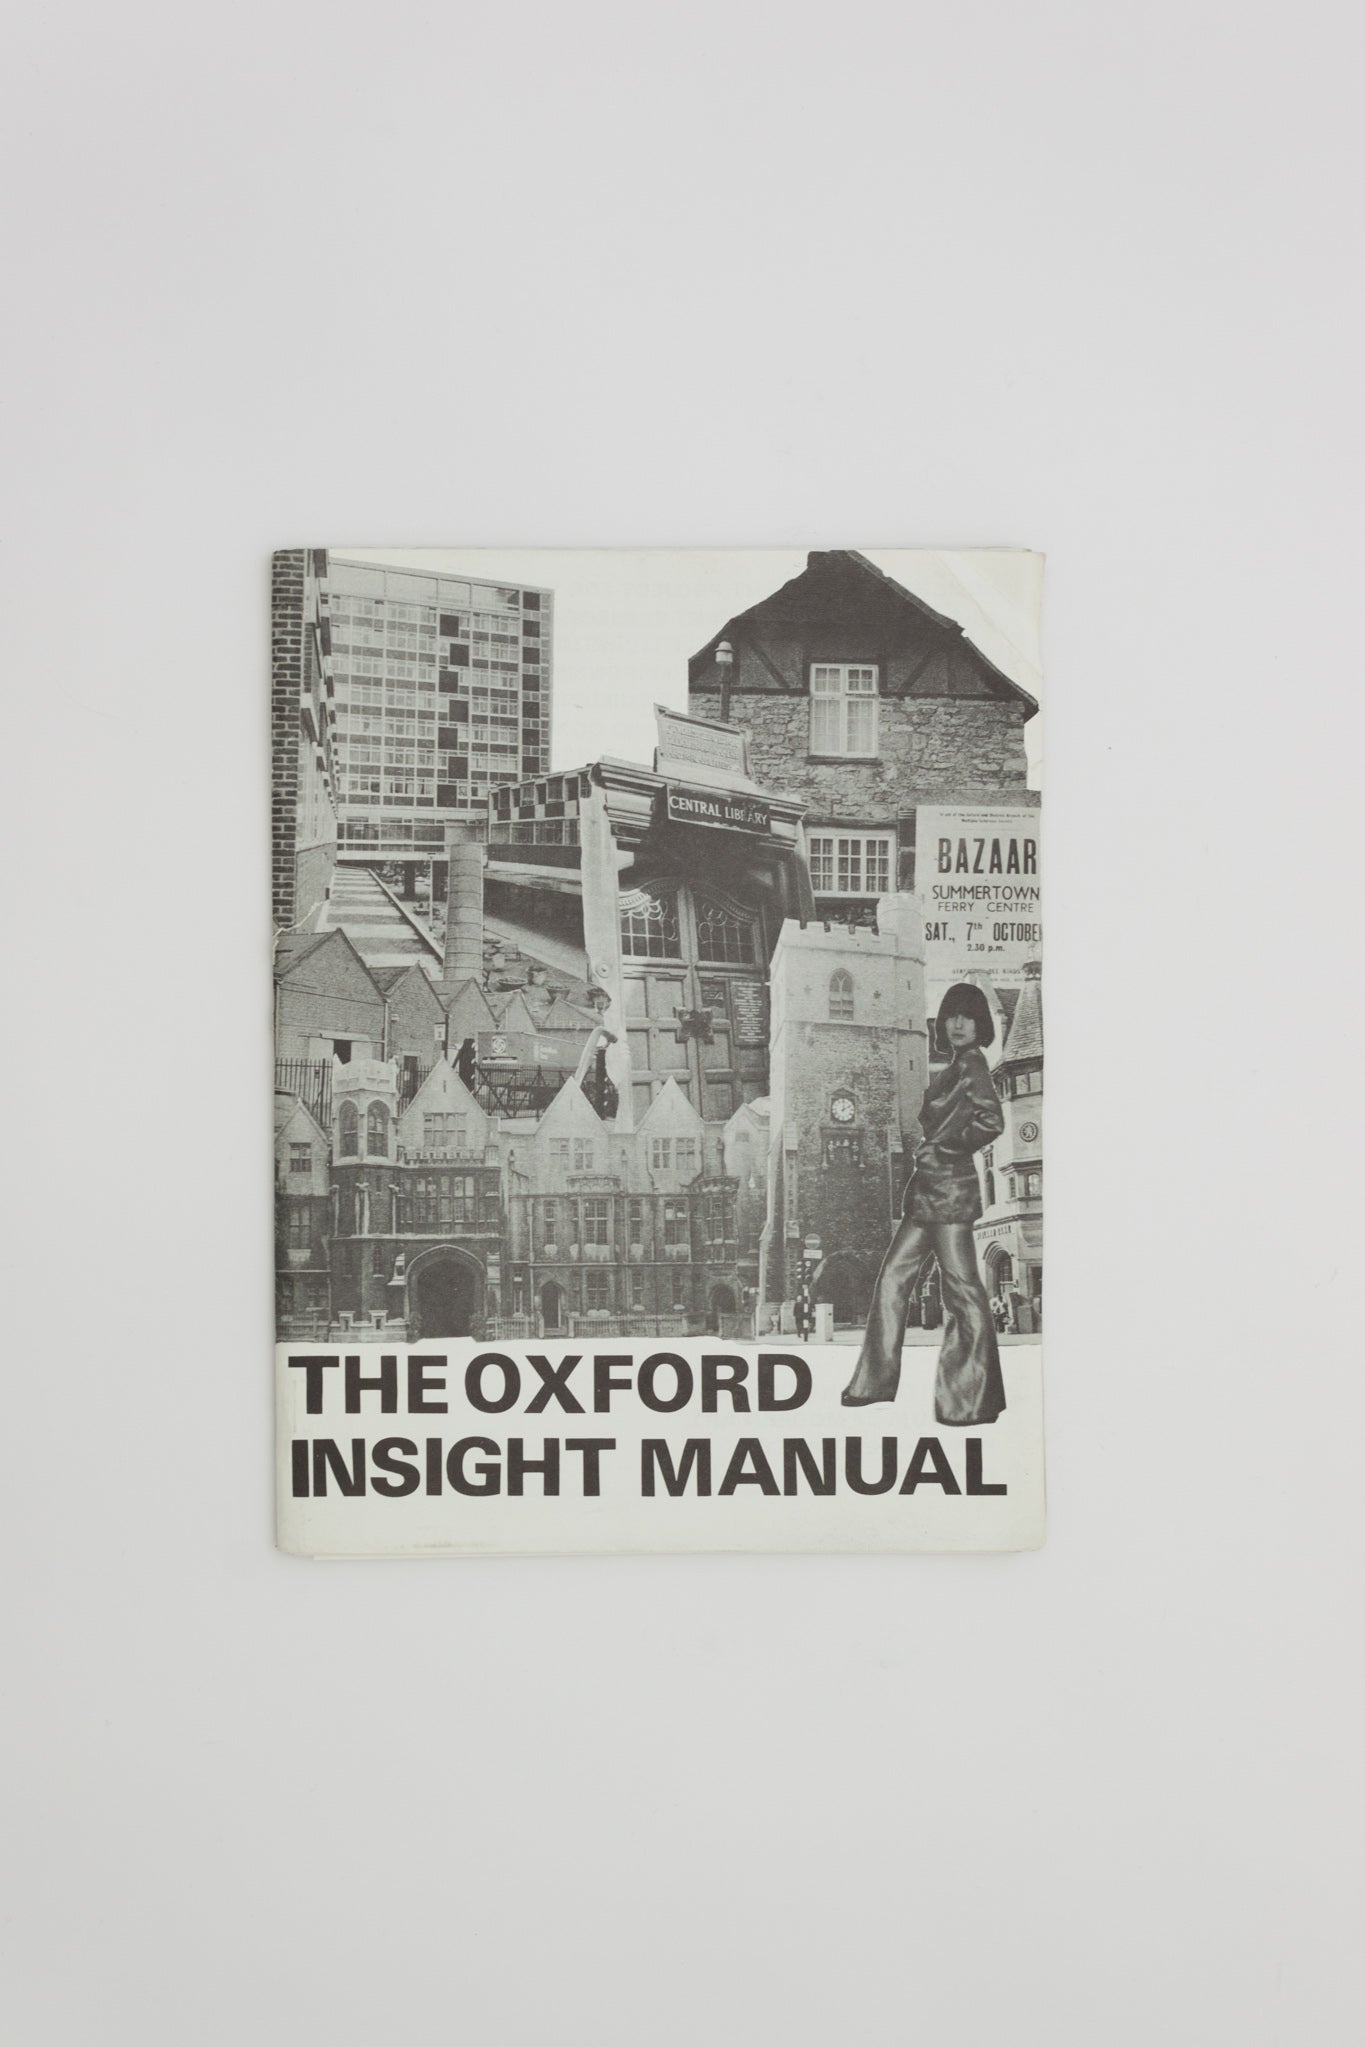 The Oxford Insight Manual - Stephen Willats